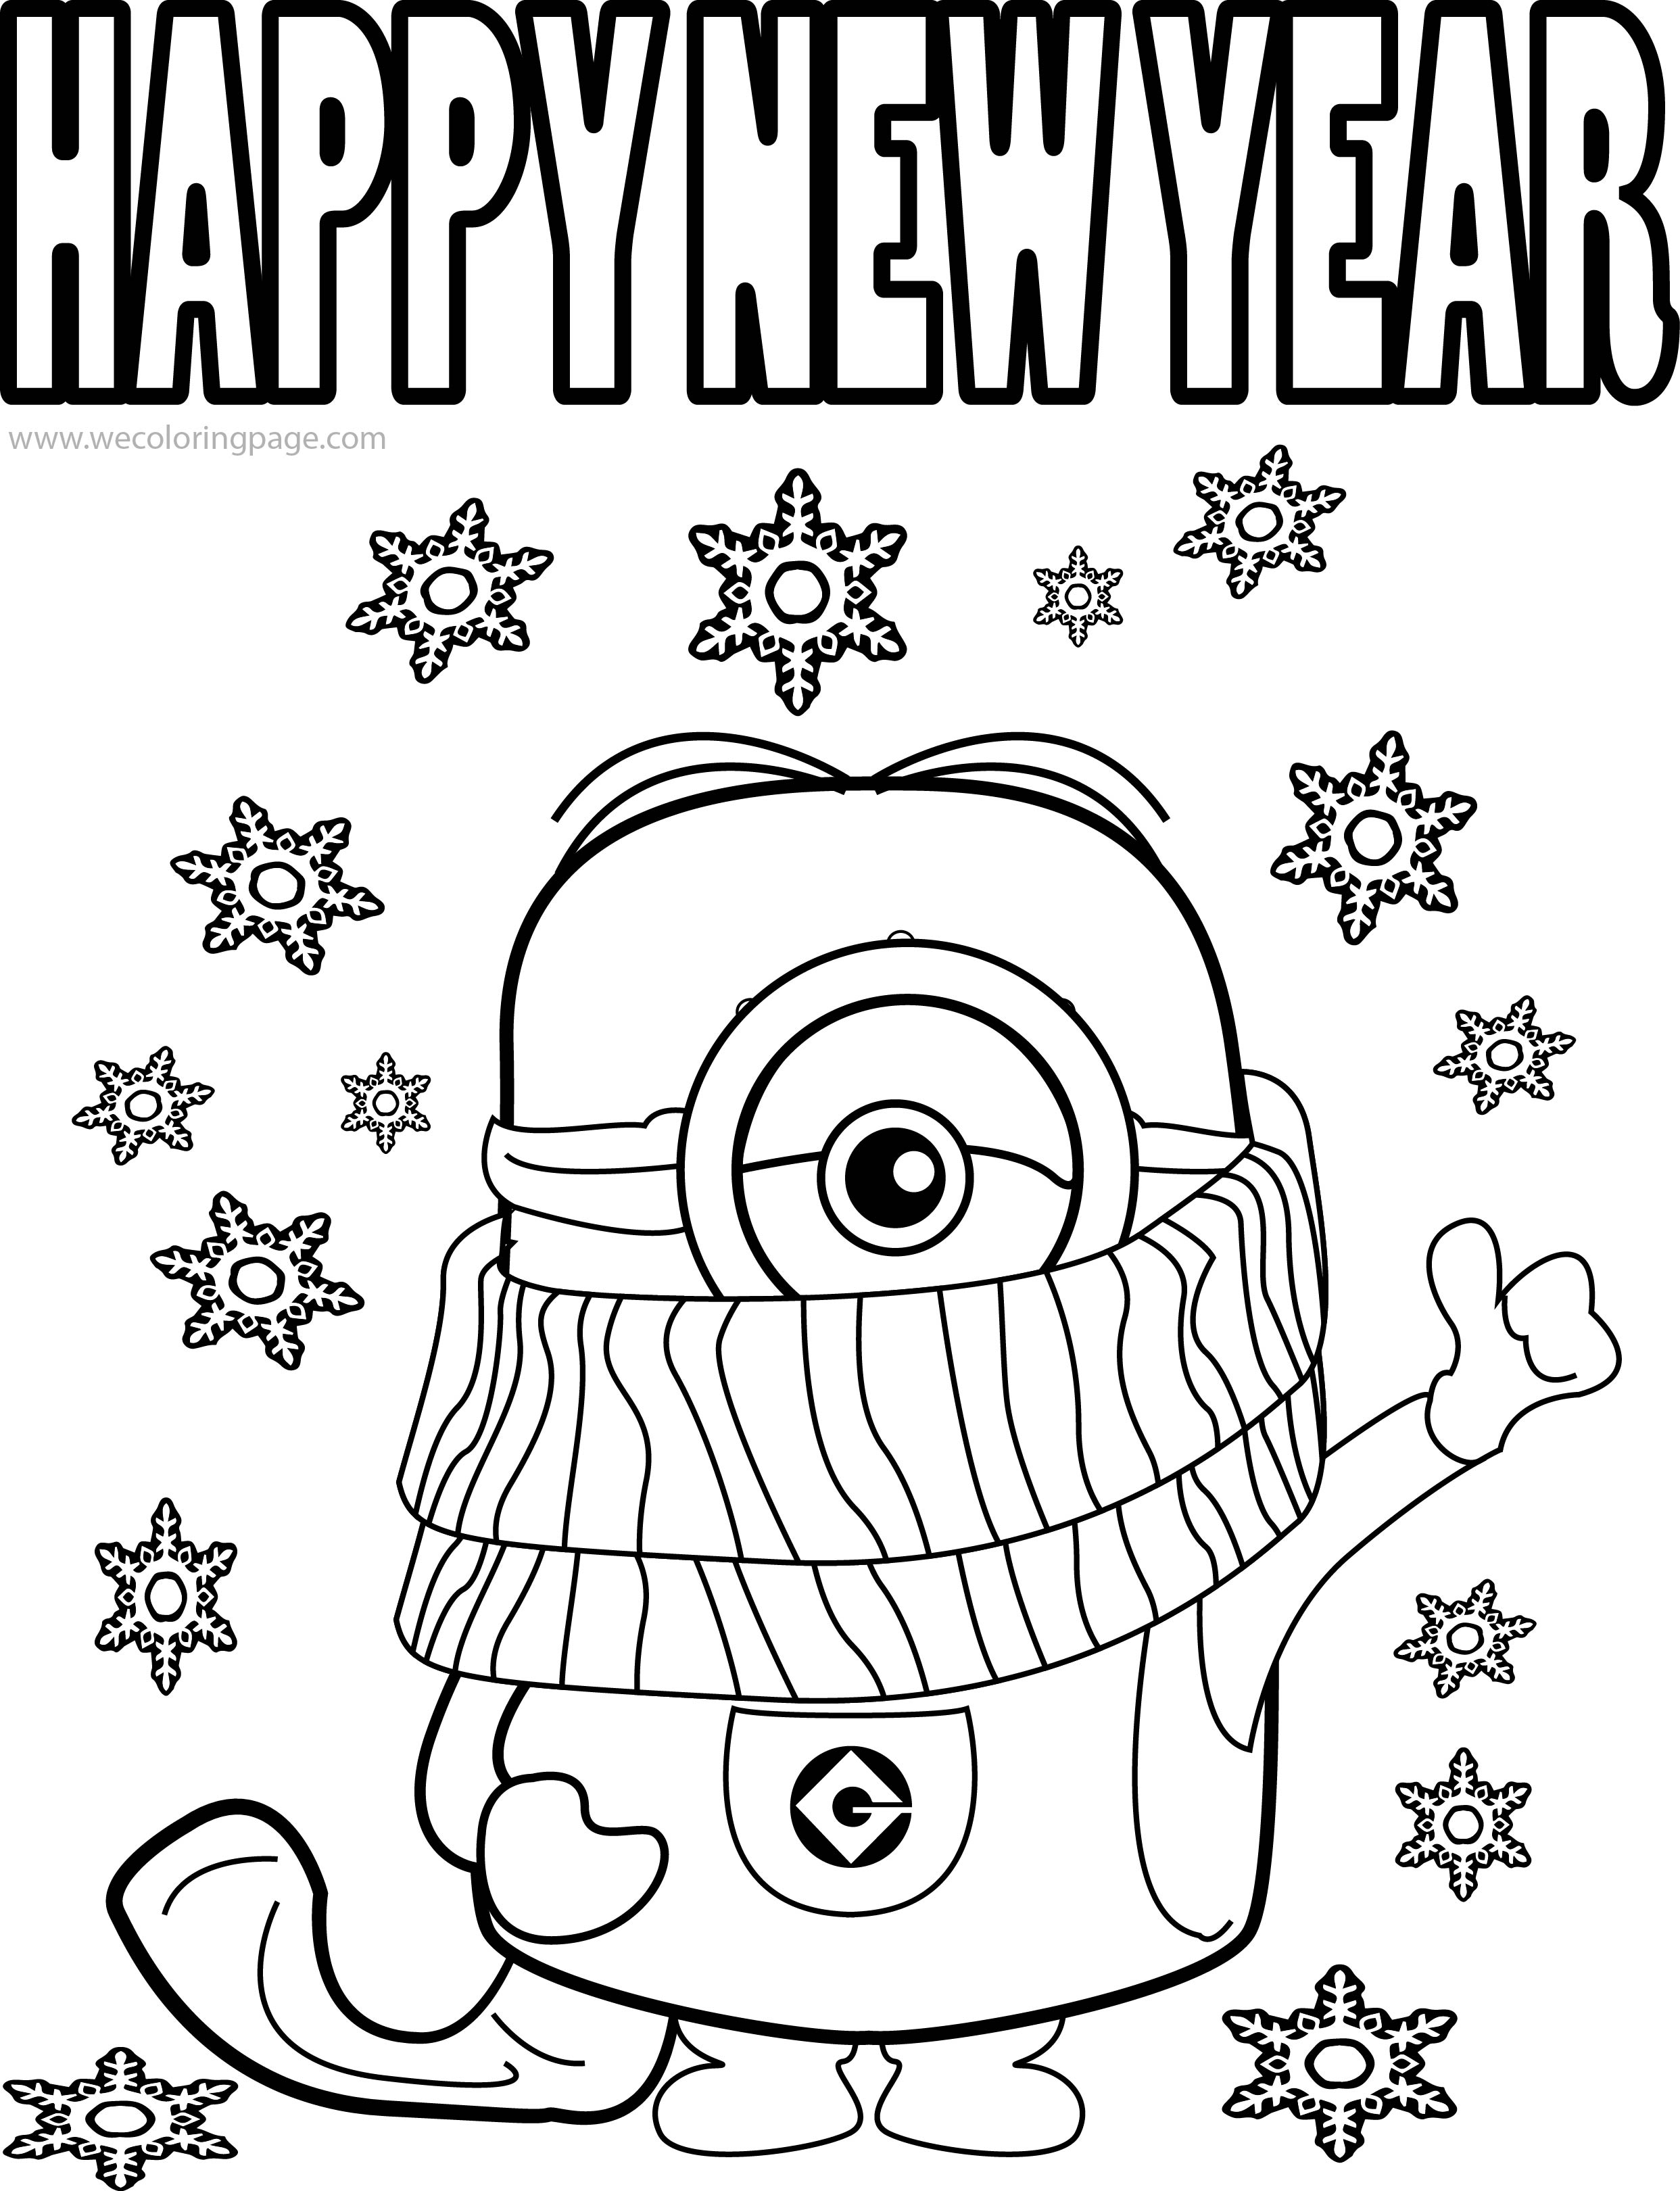 2485x3241 Happy New Year Coloring Pages Hd Printable Photos, Images